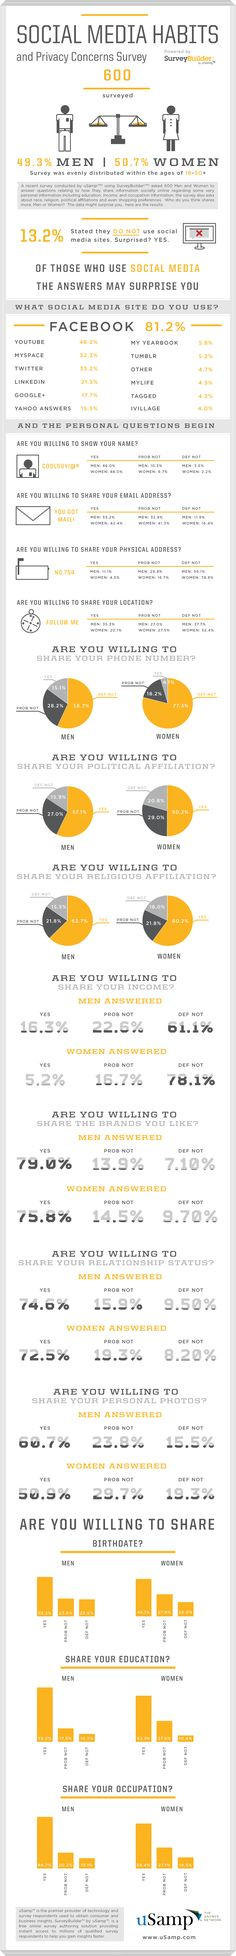 The Social Media Sharing Habits Of Men And Women [infographic]